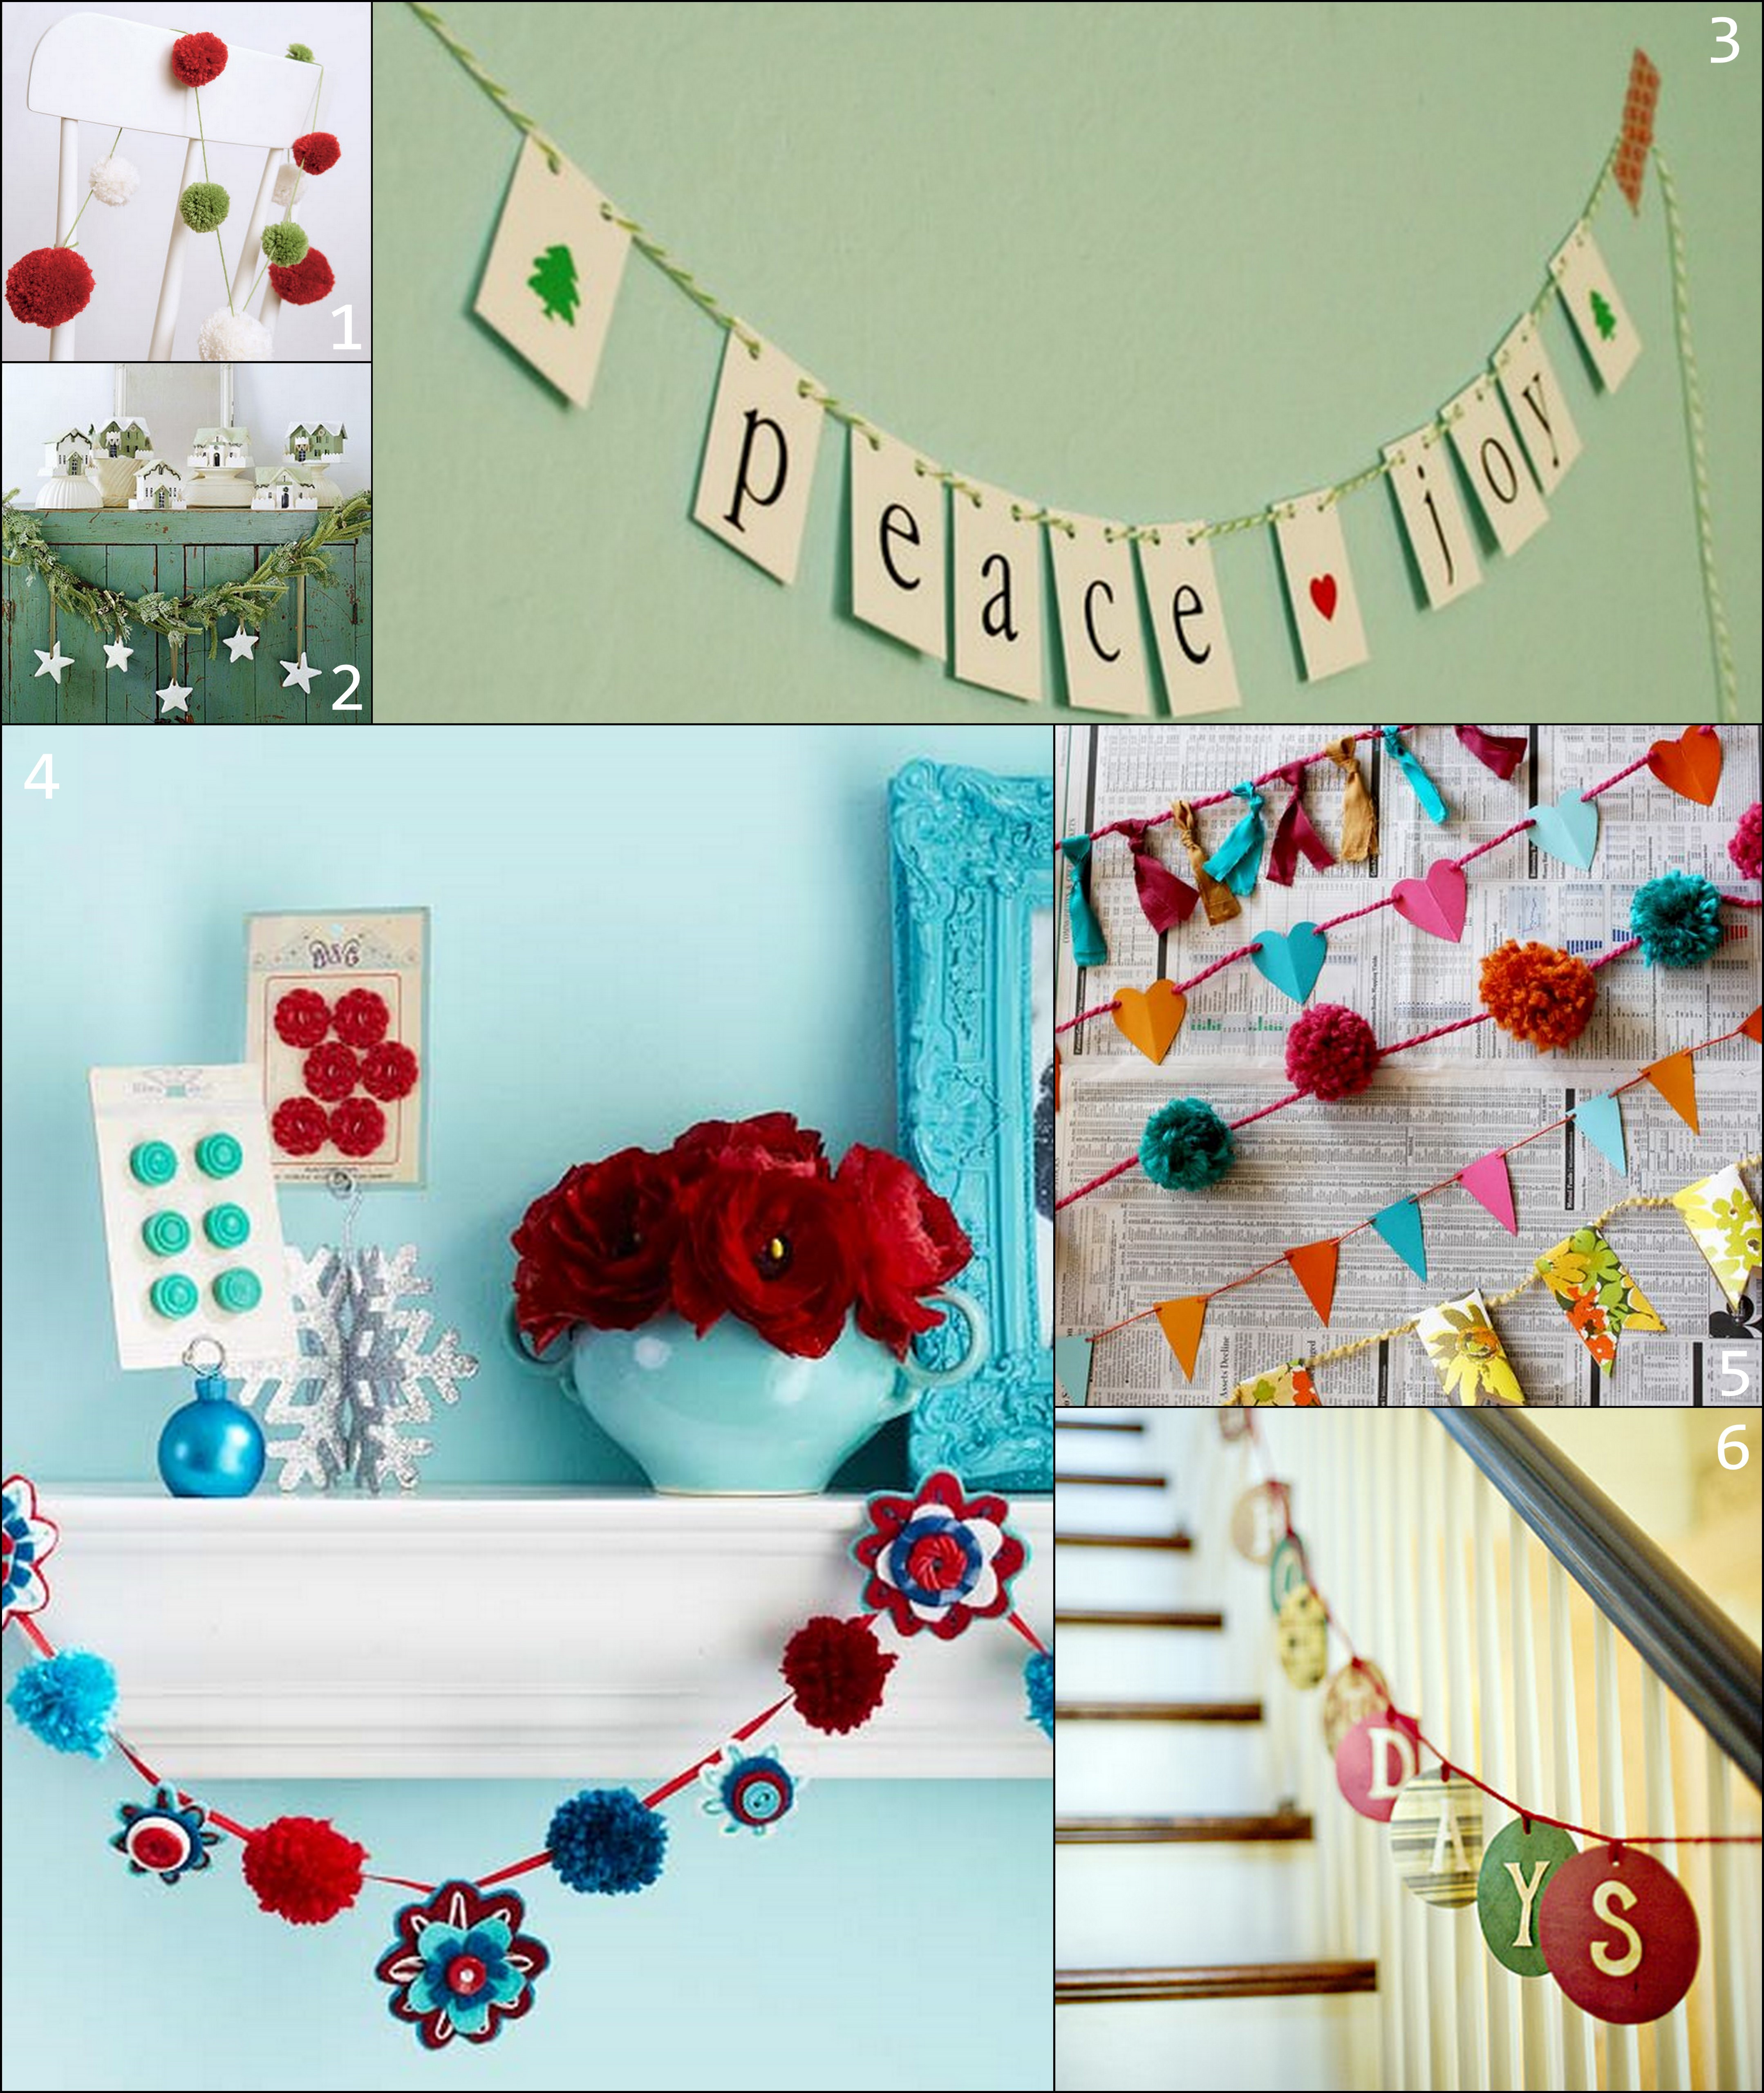 Best ideas about DIY Christmas Garland Ideas . Save or Pin Paper and Fabric Garland Ideas for the Holidays Now.